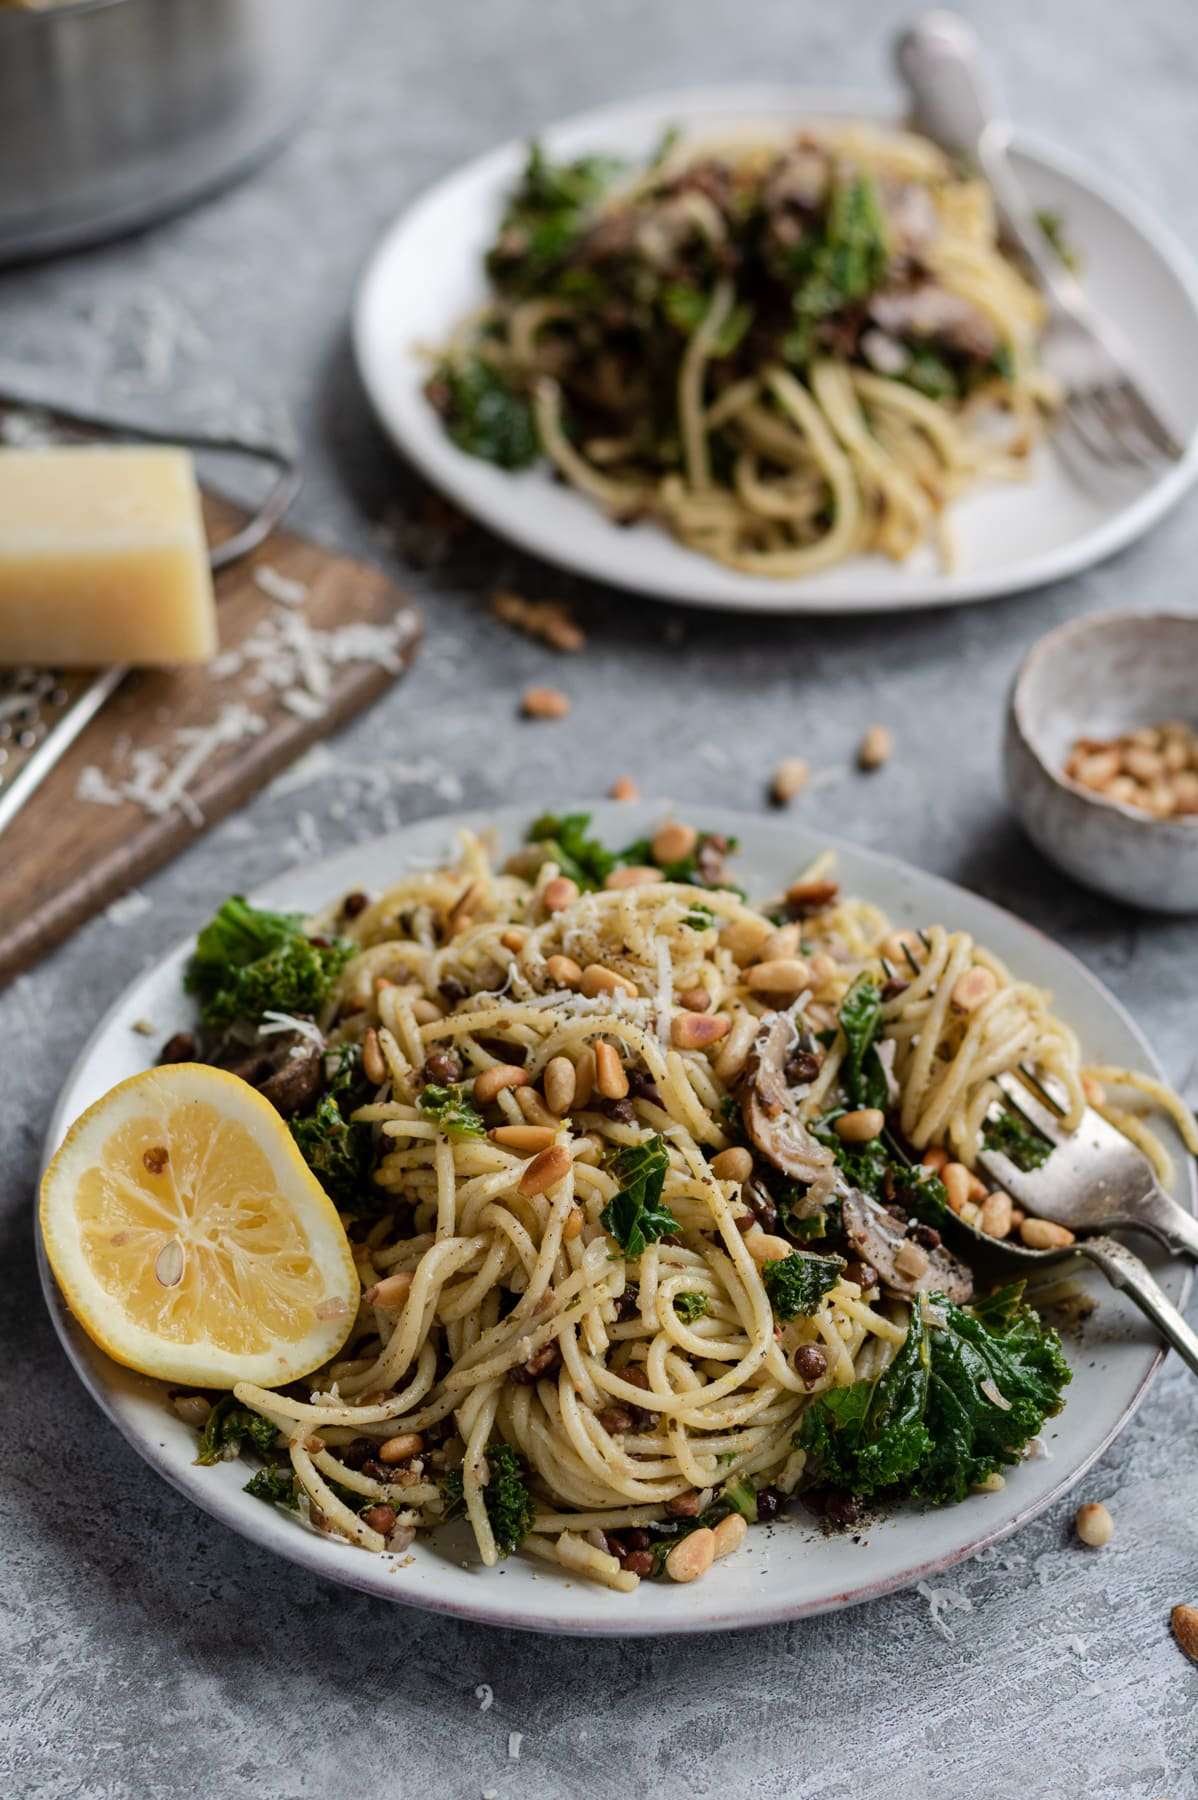 spaghetti with mushrooms, sprinkled with pine nuts and parmesan